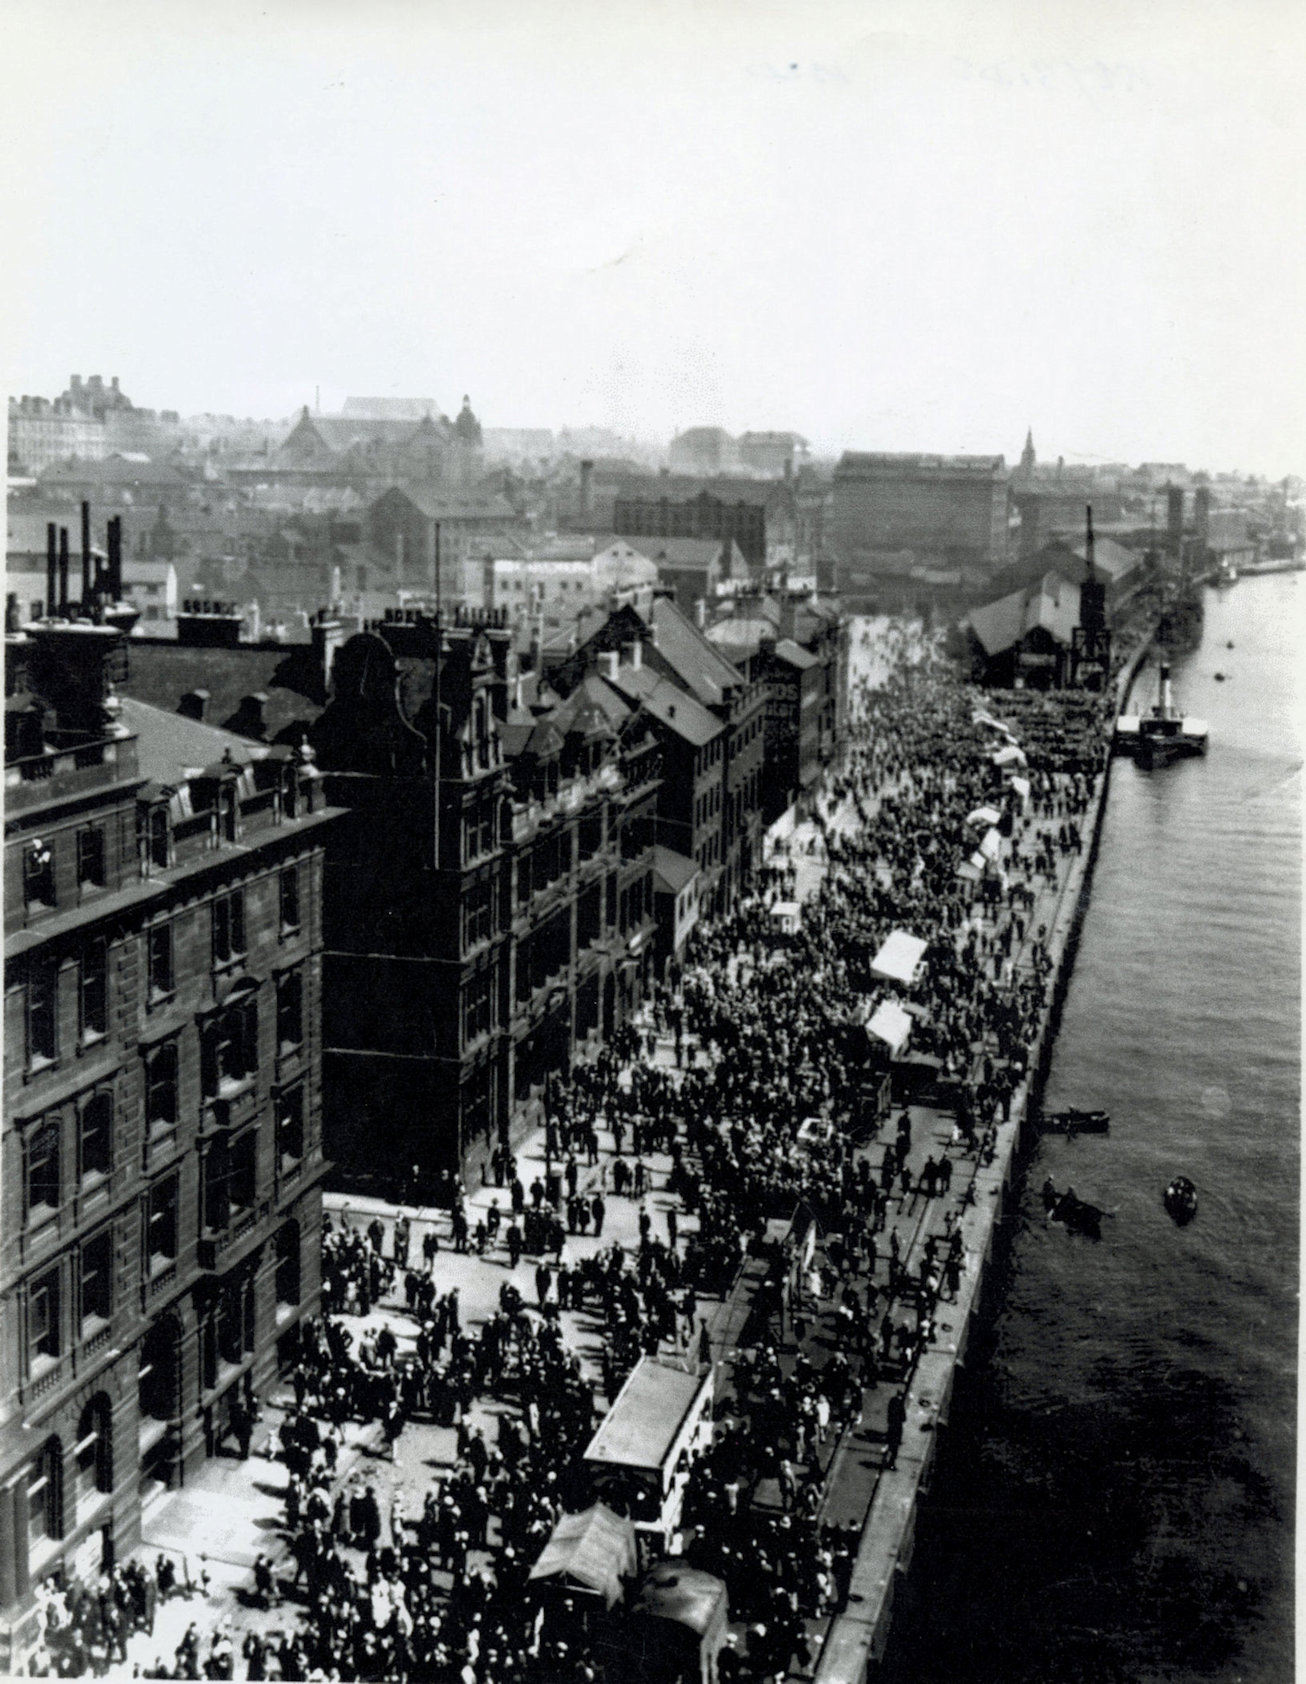 Newcastle Quayside 1920 - Copy.jpg